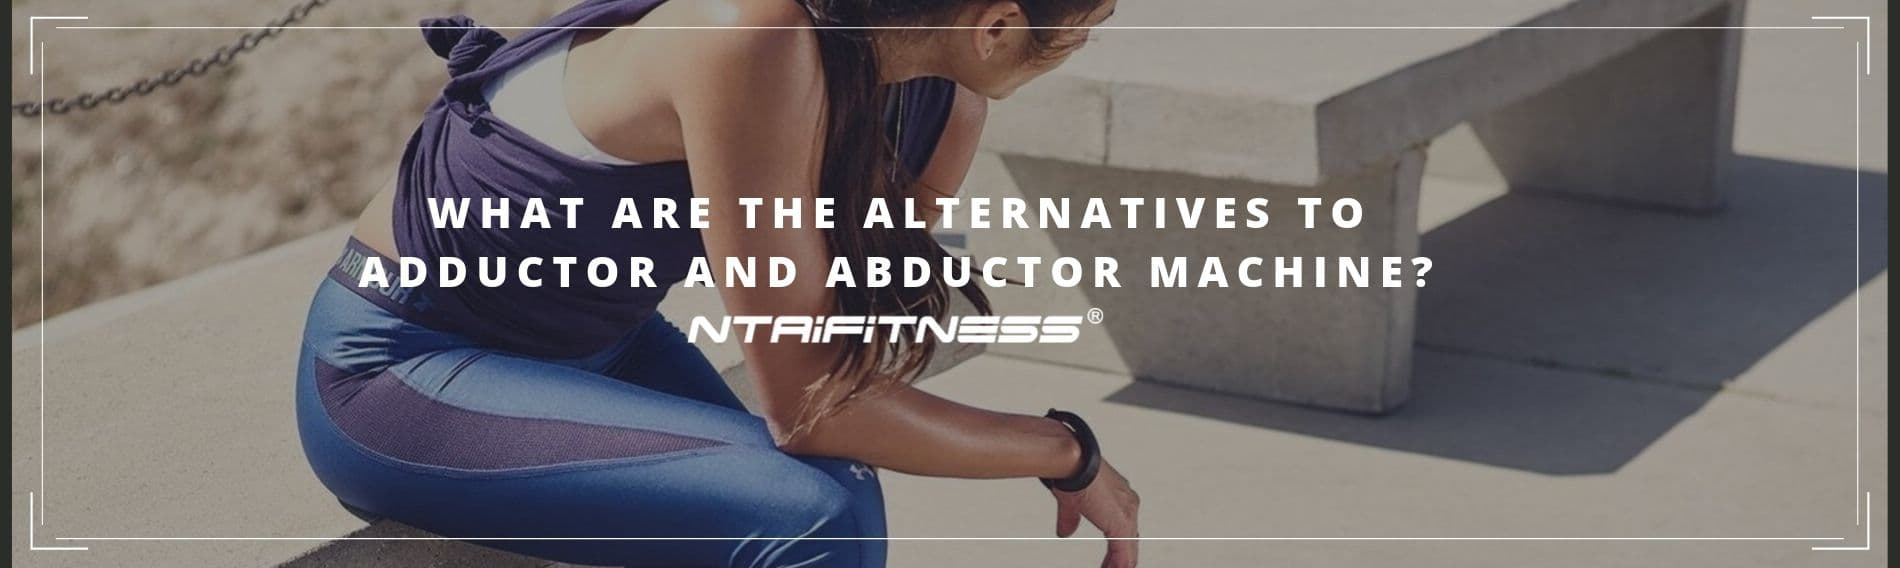 What are the Alternatives to Adductor and Abductor Machine?